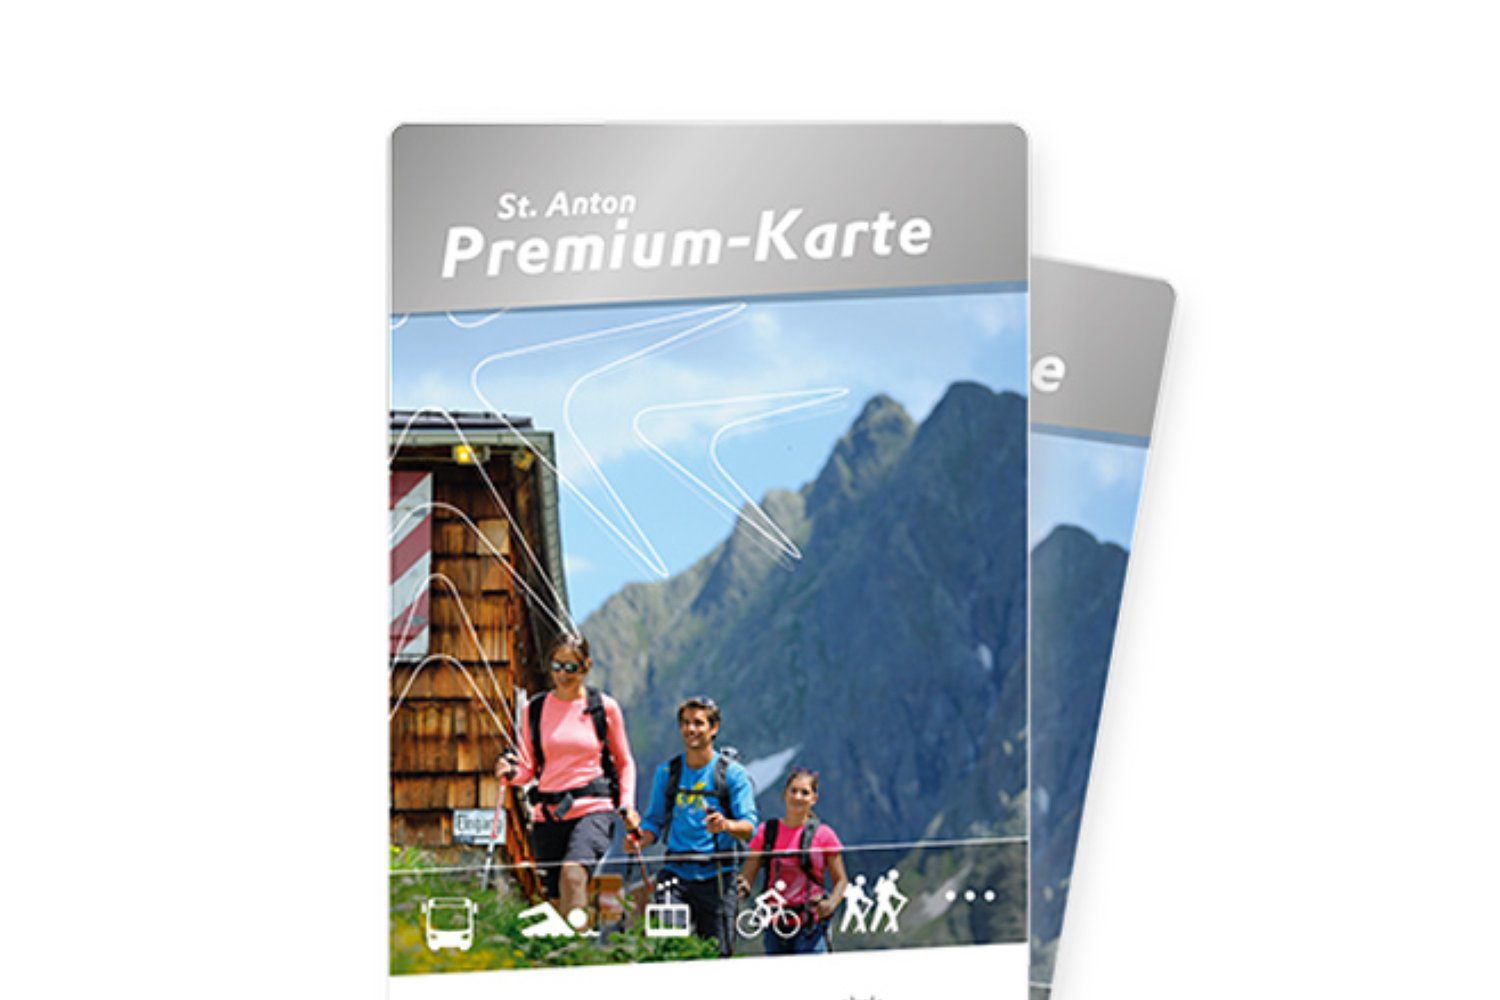 20% off with the St. Anton Premium Card